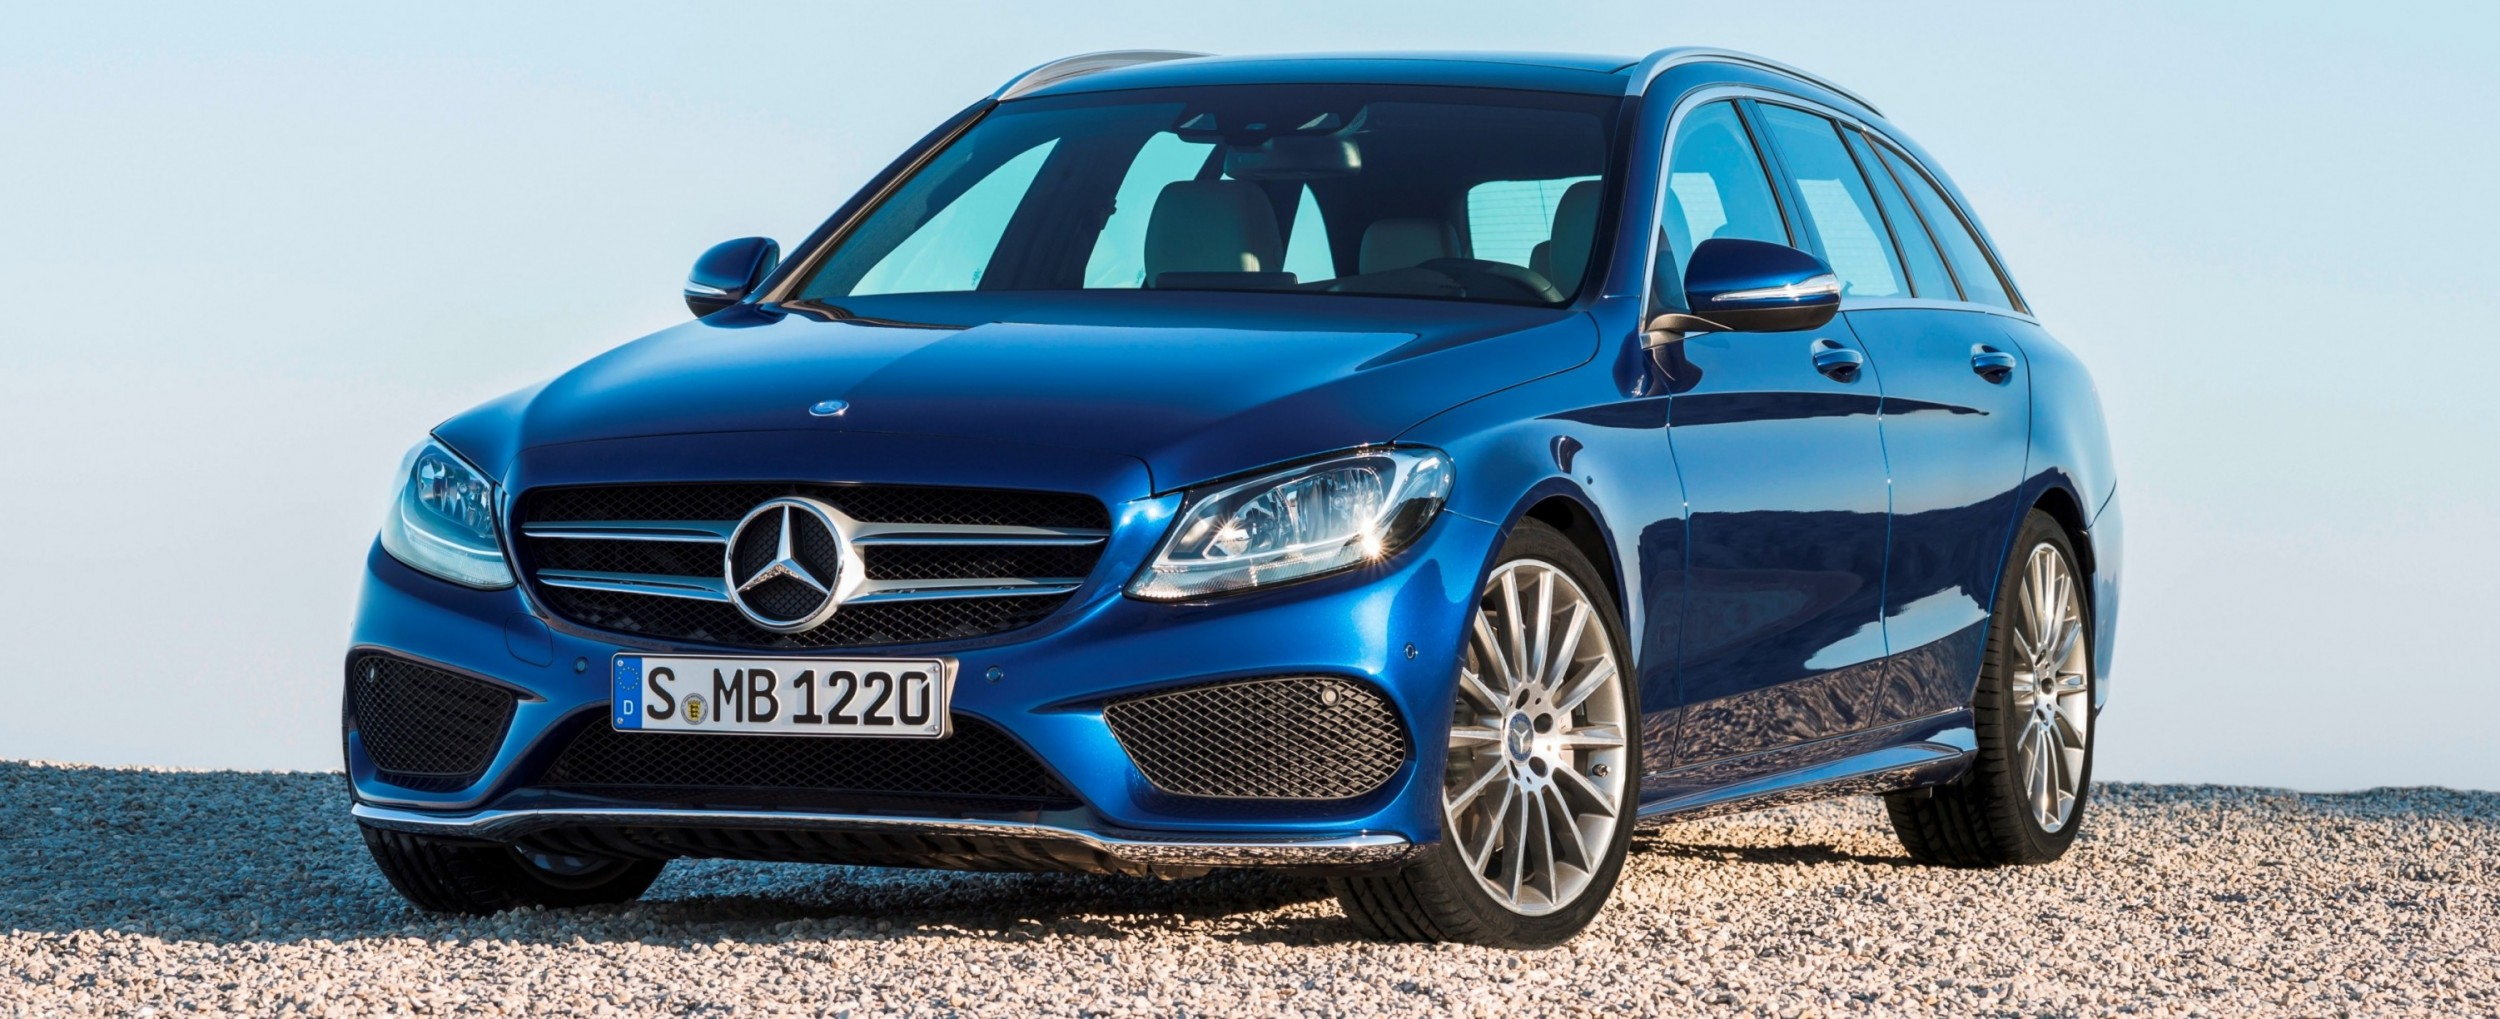 2015 mercedes benz c class estate ups wagon sexiness will for Mercedes benz estate cars